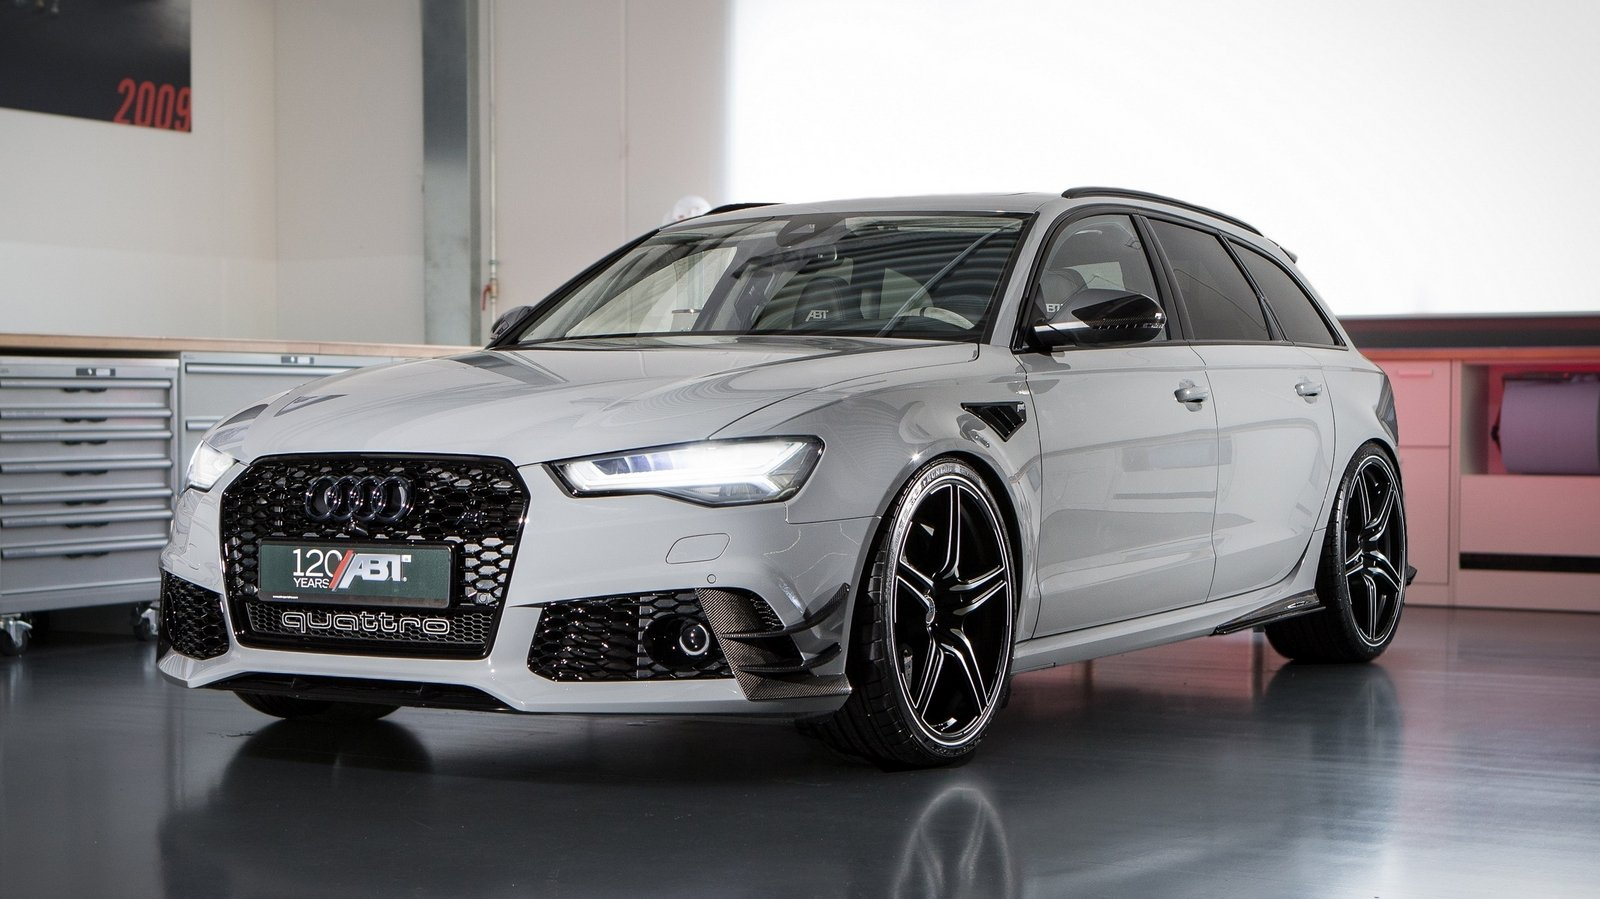 2016 audi rs6 avant by abt sportsline top speed. Black Bedroom Furniture Sets. Home Design Ideas